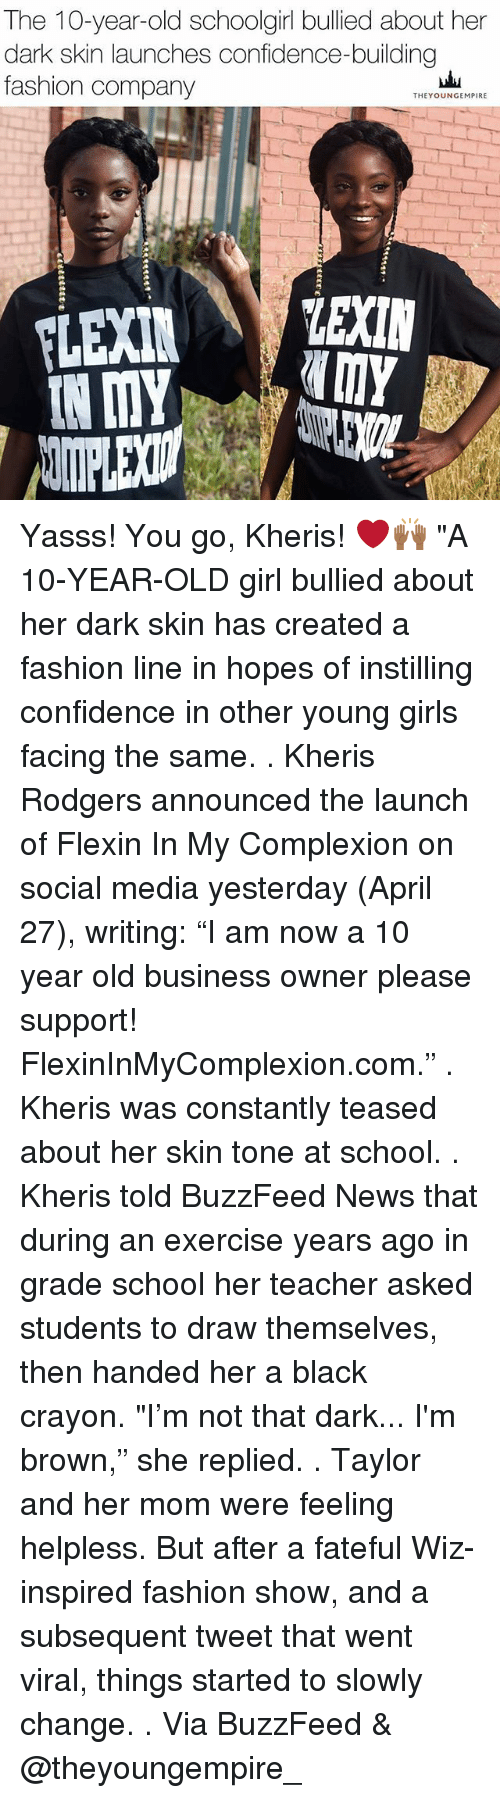 """Subsequent: The 10-year-old schoolgirl bullied about her  dark skin launches confidence-building  fashion company  THEYOUNGEMPIRE  LEXIN  IN MY Yasss! You go, Kheris! ❤️🙌🏾 """"A 10-YEAR-OLD girl bullied about her dark skin has created a fashion line in hopes of instilling confidence in other young girls facing the same. . Kheris Rodgers announced the launch of Flexin In My Complexion on social media yesterday (April 27), writing: """"I am now a 10 year old business owner please support! FlexinInMyComplexion.com."""" . Kheris was constantly teased about her skin tone at school. . Kheris told BuzzFeed News that during an exercise years ago in grade school her teacher asked students to draw themselves, then handed her a black crayon. """"I'm not that dark... I'm brown,"""" she replied. . Taylor and her mom were feeling helpless. But after a fateful Wiz-inspired fashion show, and a subsequent tweet that went viral, things started to slowly change. . Via BuzzFeed & @theyoungempire_"""